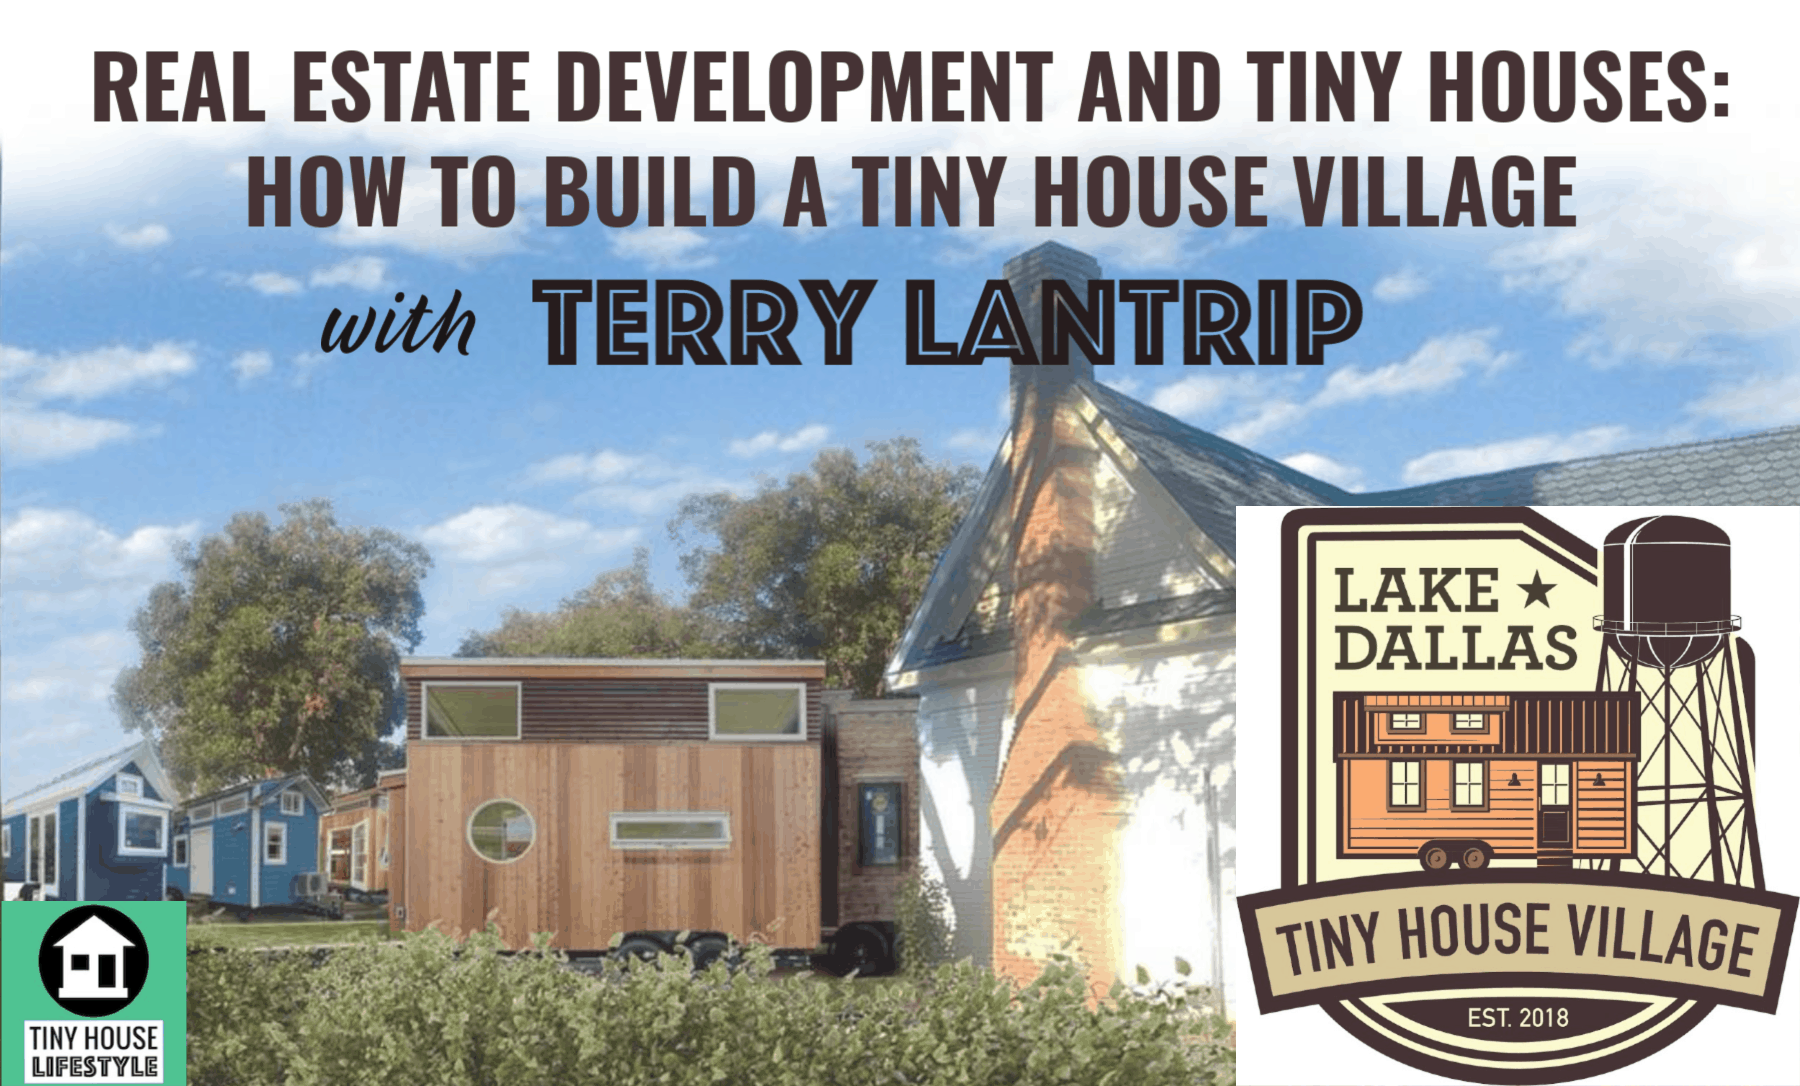 How To Build A Tiny House Village With Terry Lantrip Tiny House Village Building A Tiny House Tiny House